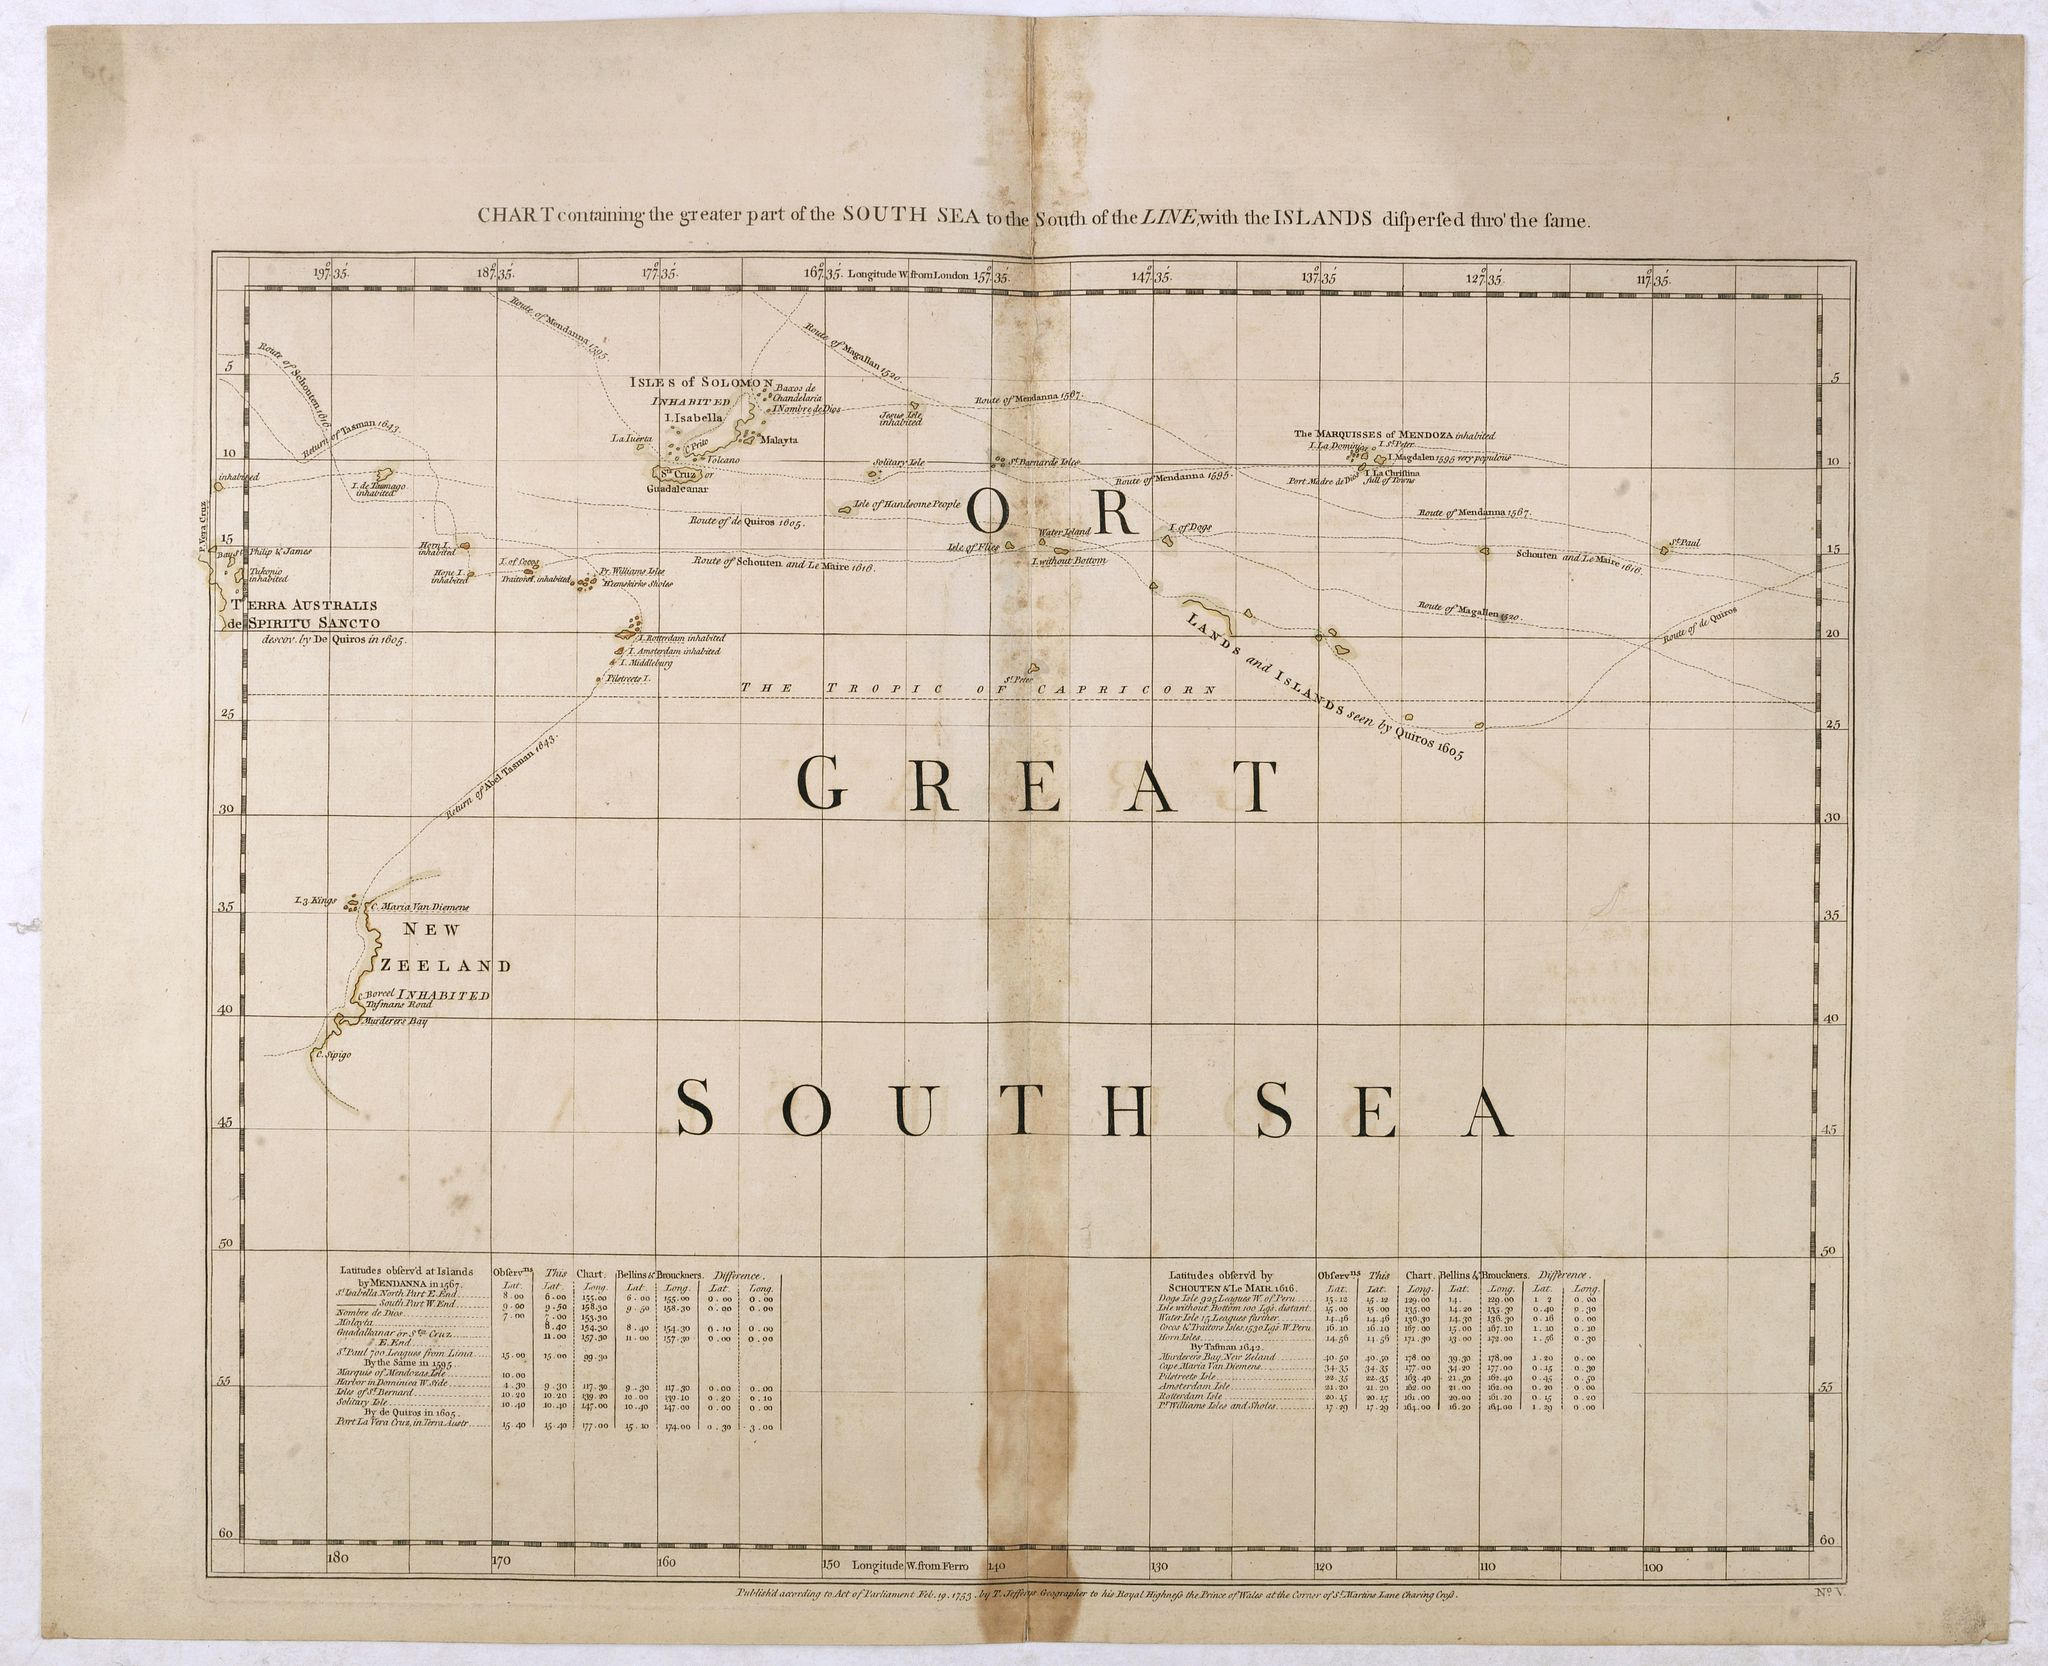 JEFFERY'S, Th.,  Chart containing the greater part of the South Sea to the south of the line with the islands dispersed thro' the same., antique map, old maps